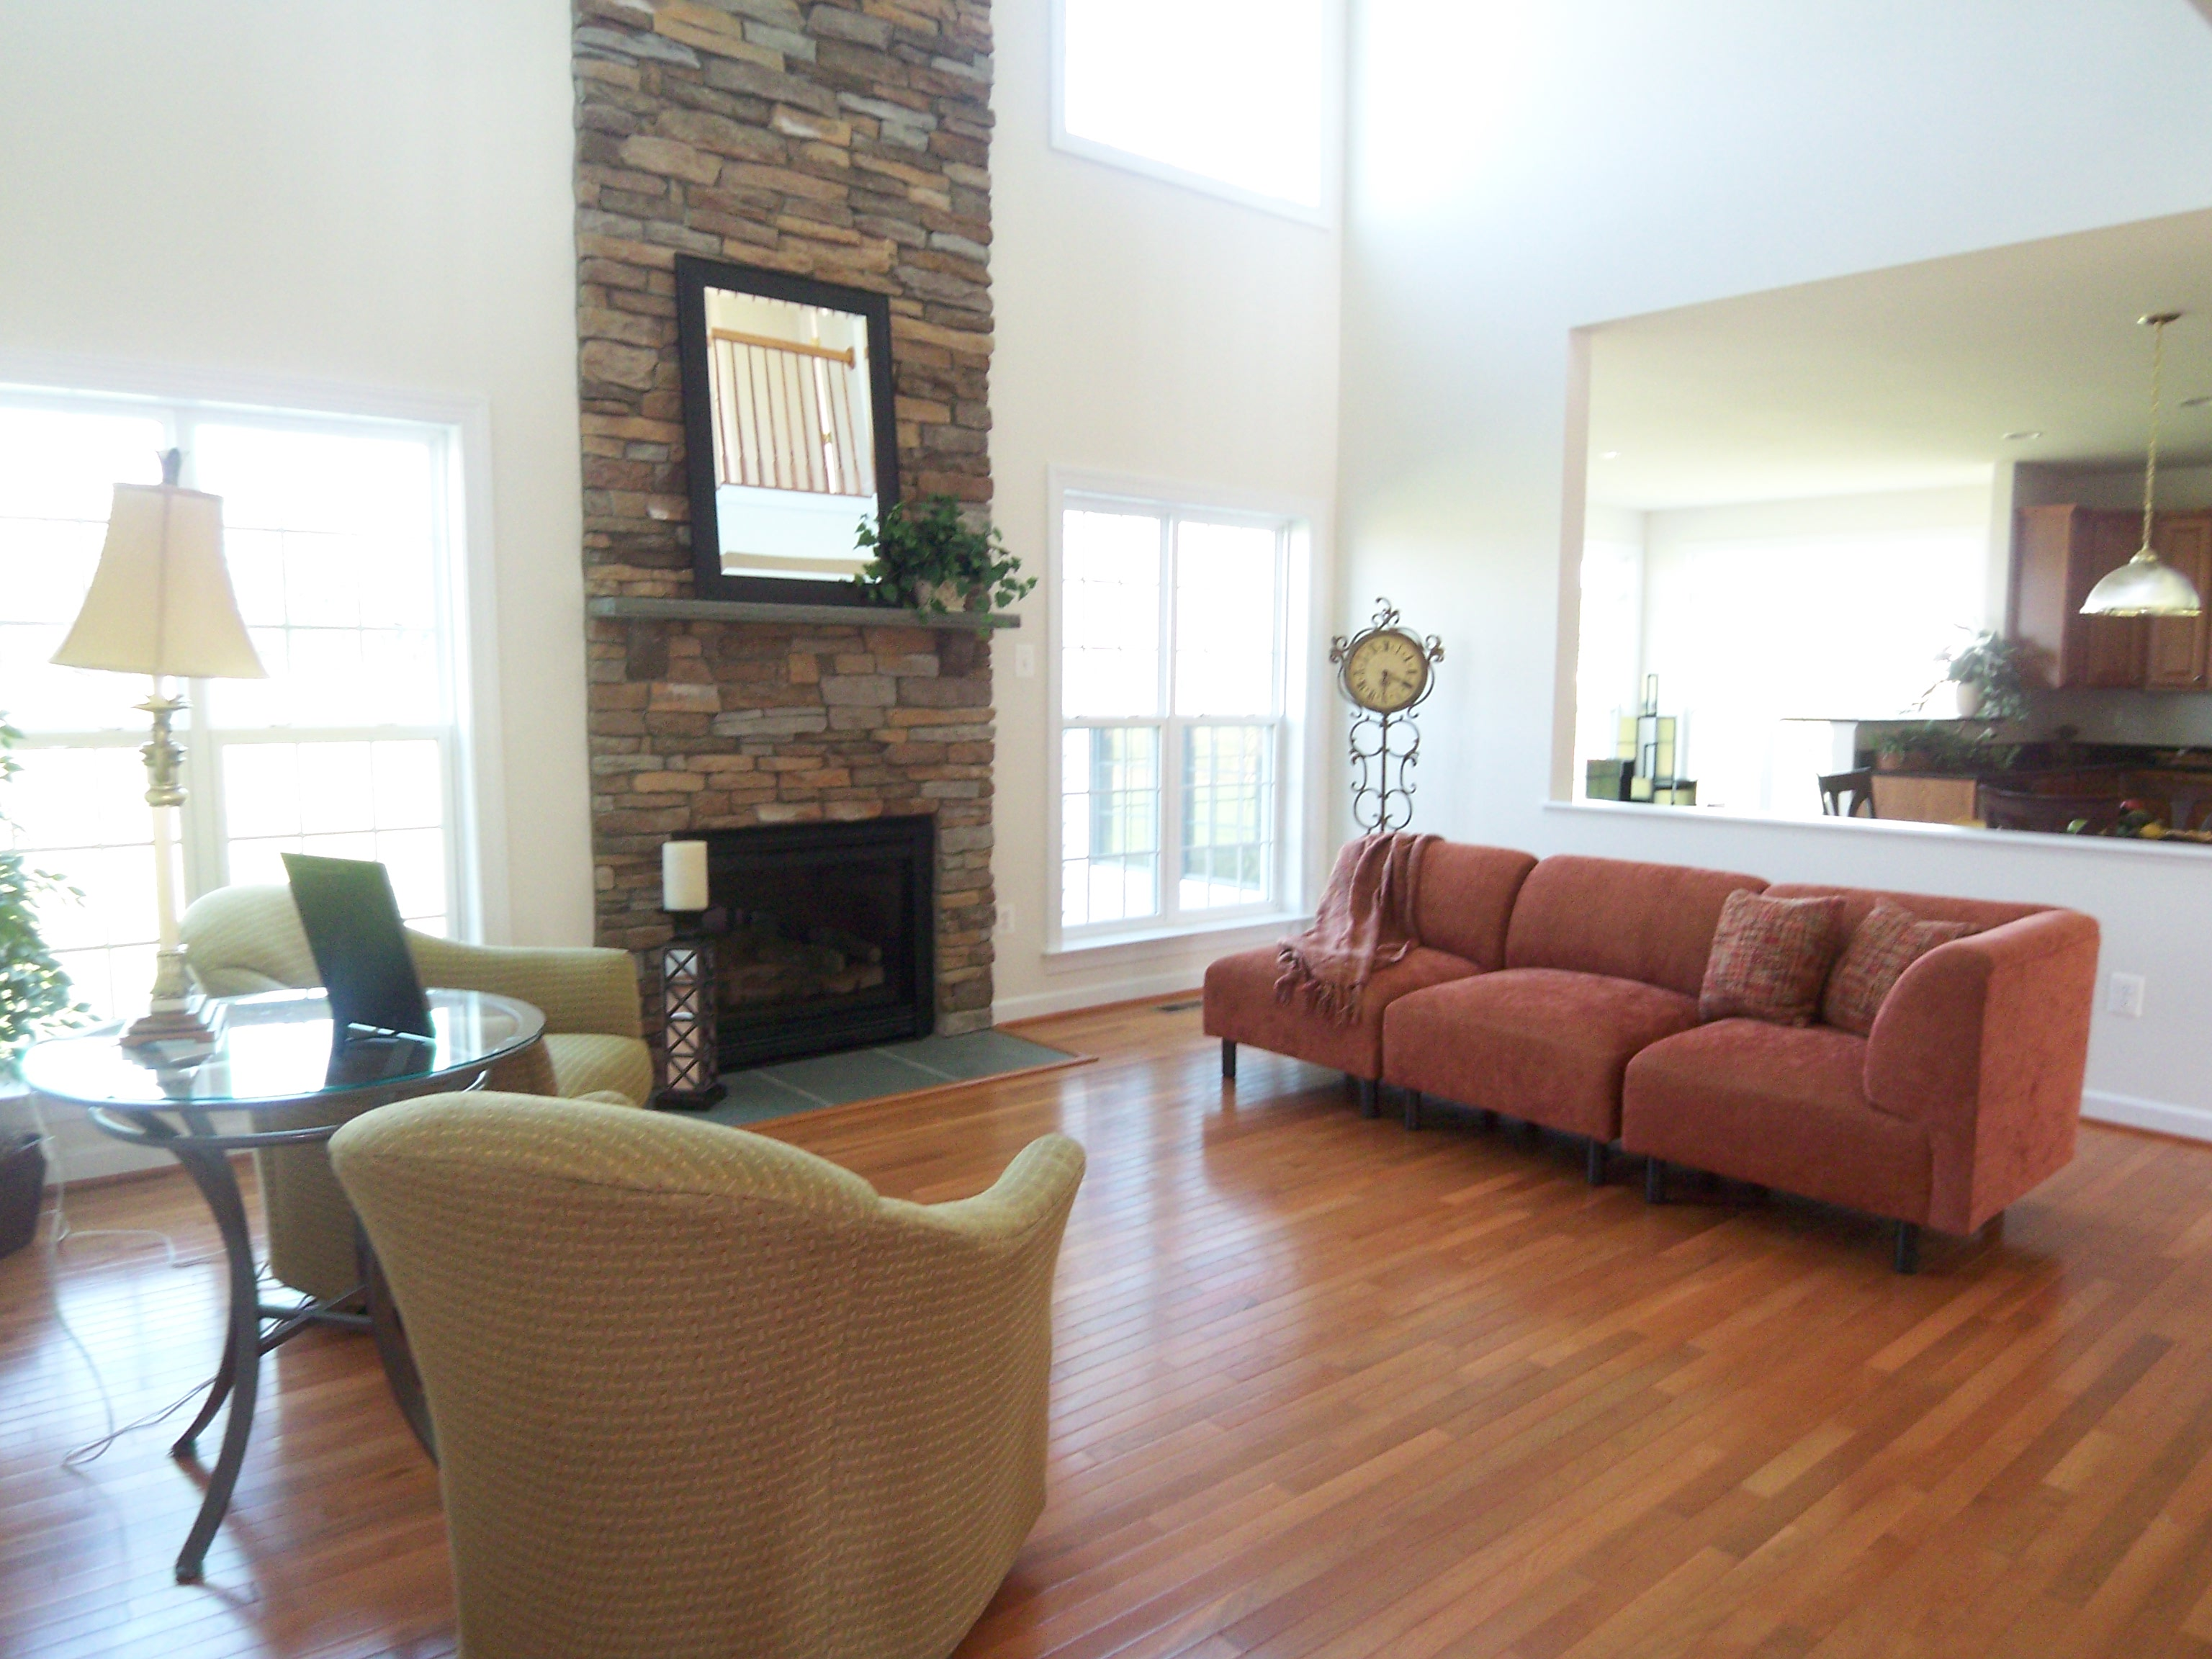 Occupied Home After Omni Home Staging Transform your home to sell it fast 673.jp